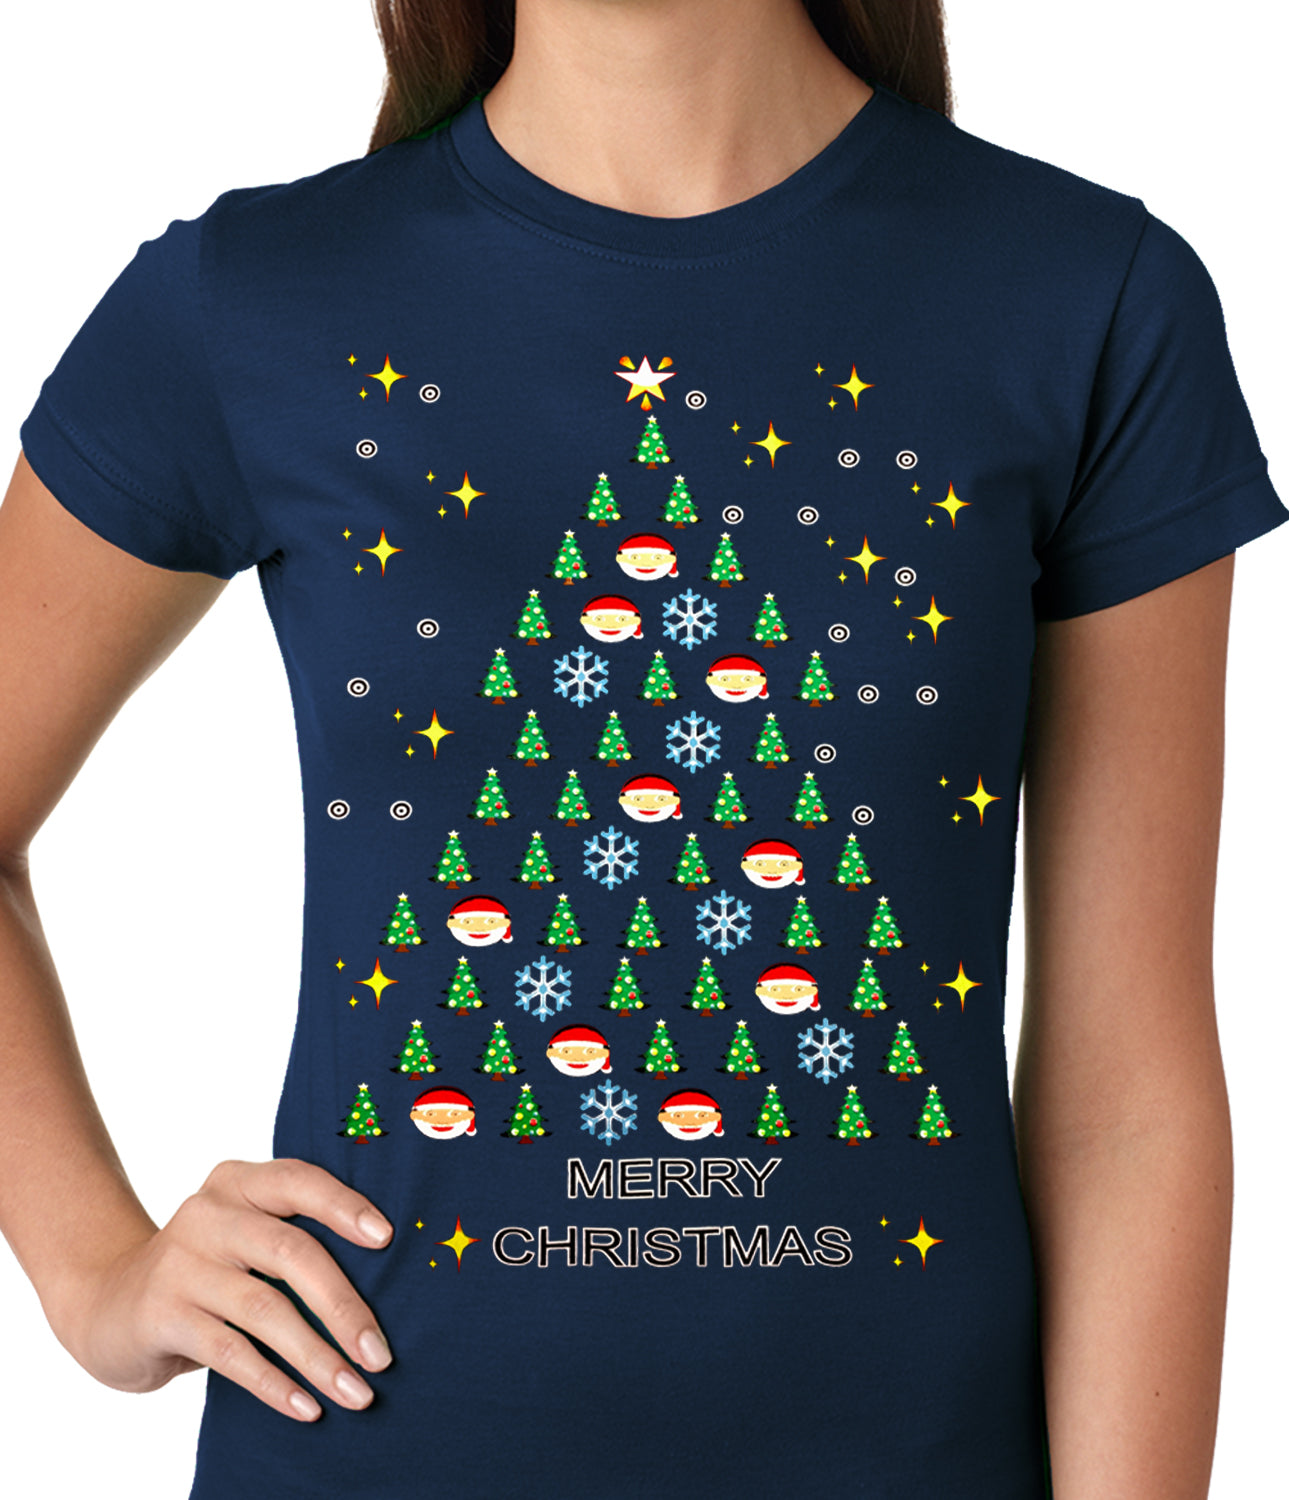 b7c0ddb0aaf Ugly Christmas Tee - Emoji Christmas Tree Ugly Christmas Ladies T-shirt